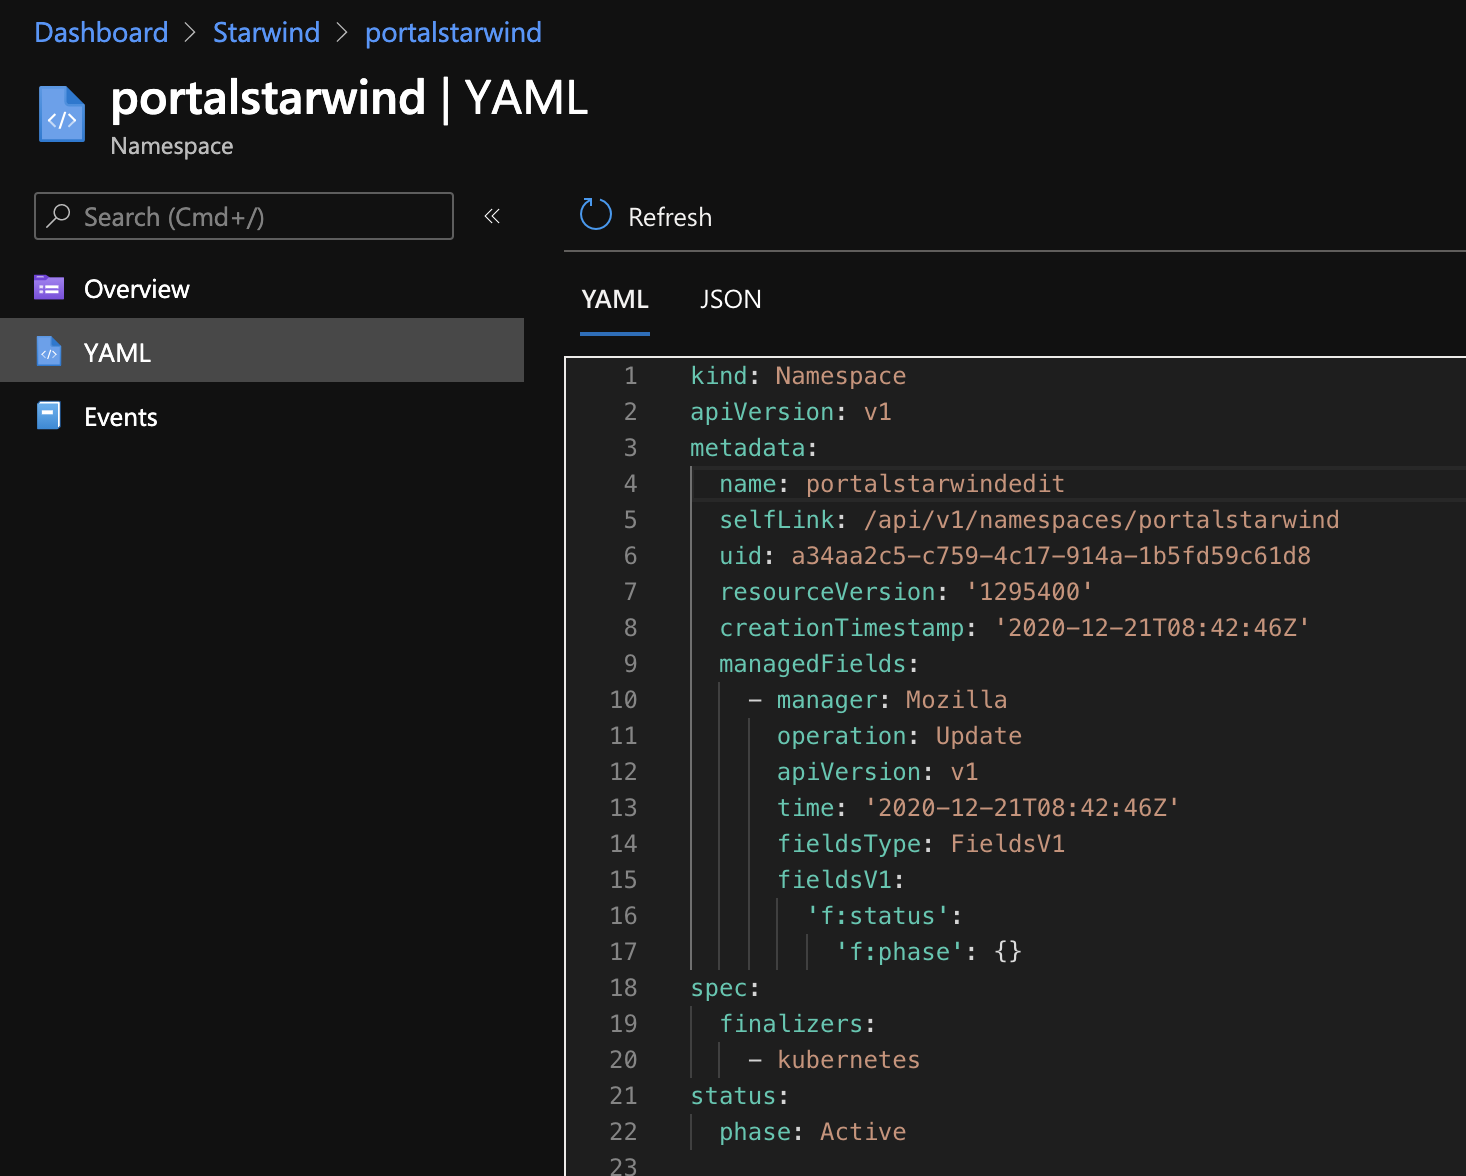 Edit the yaml, directly from the portal